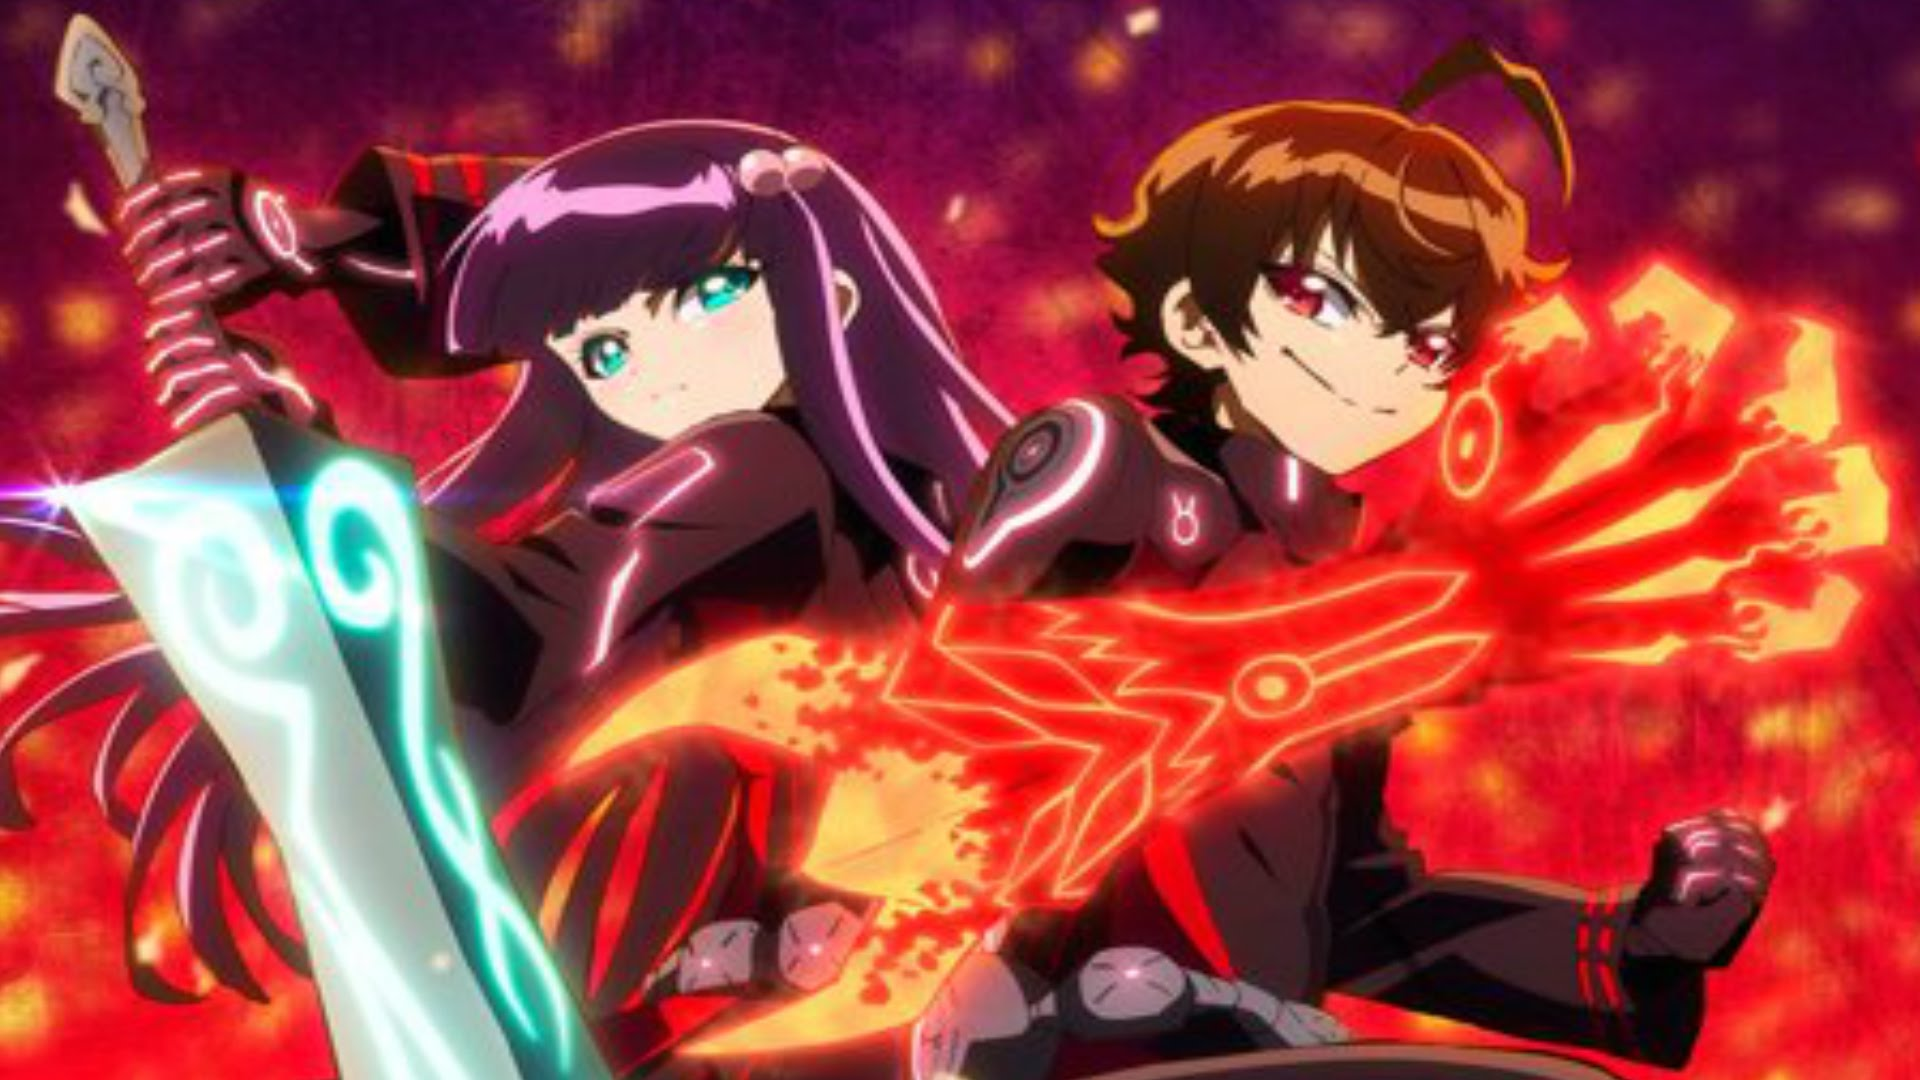 HQ Twin Star Exorcists Wallpapers | File 195.89Kb